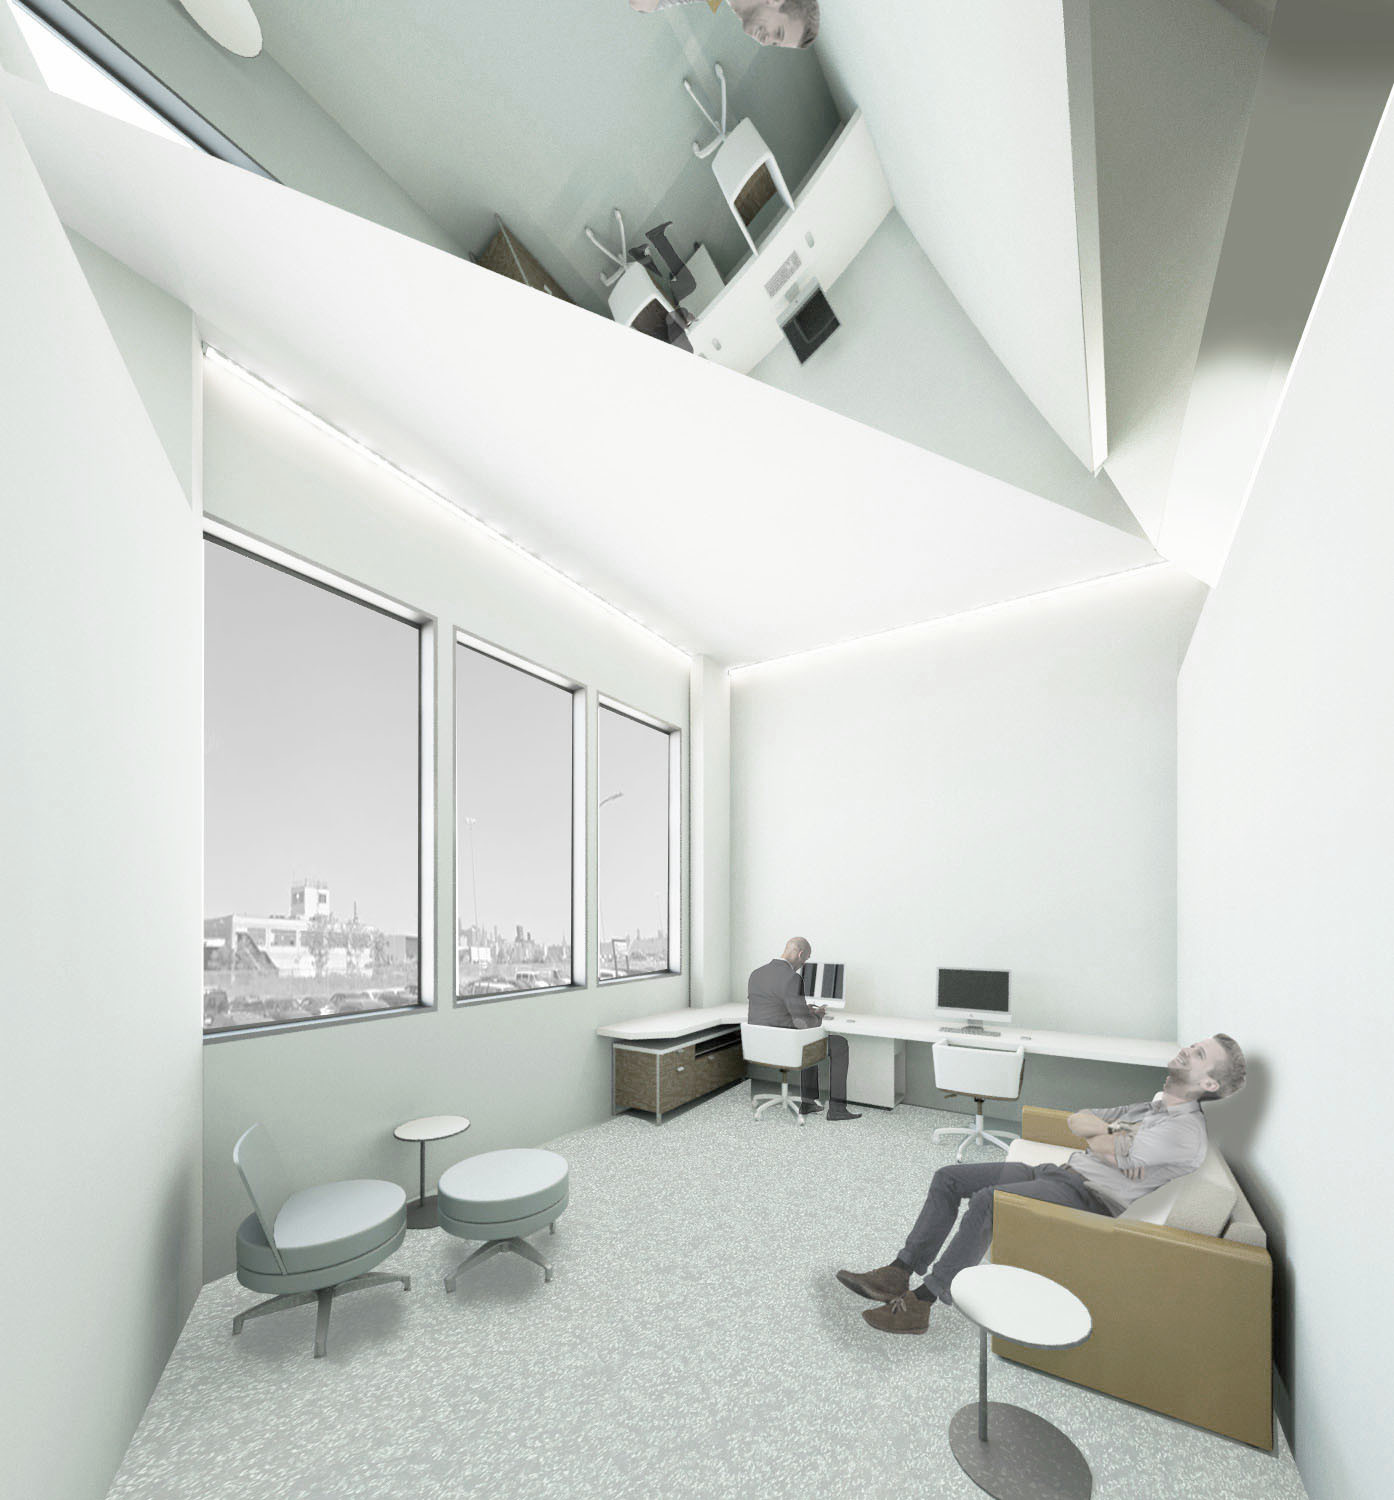 View of 2nd floor individualm office